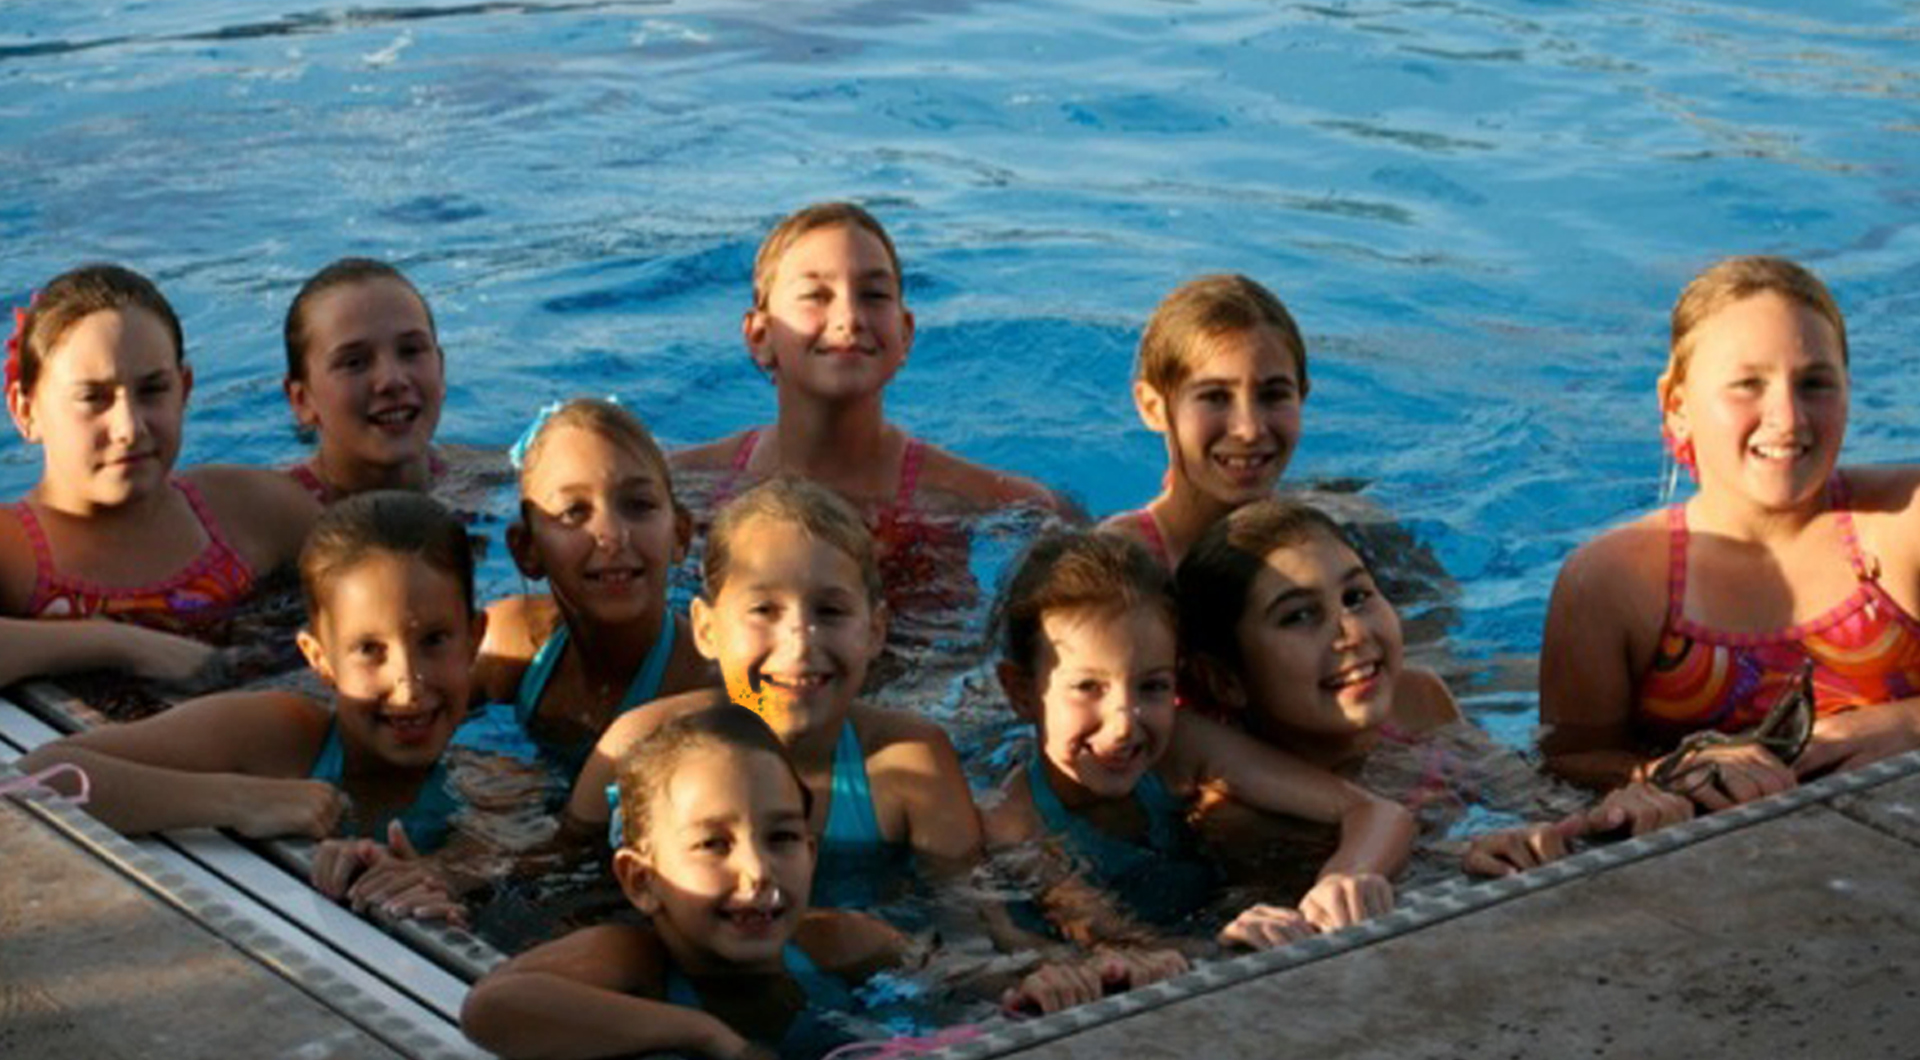 This program is a non-competitive introduction to synchronized swimming. Our Saturday Swimmers program is for kids who need to work on their strokes and have no or little experience in synchronized swimming. An athlete should be able to swim two laps of crawl stroke and breaststroke as well as feel comfortable swimming in the deep end of a pool.  Saturday swimmers will learn synchro skills such as ballet leg, somersaults, sculling, and eggbeater and will perform simple routines. Bring a friend and come out to begin learning this amazing Olympic sport.